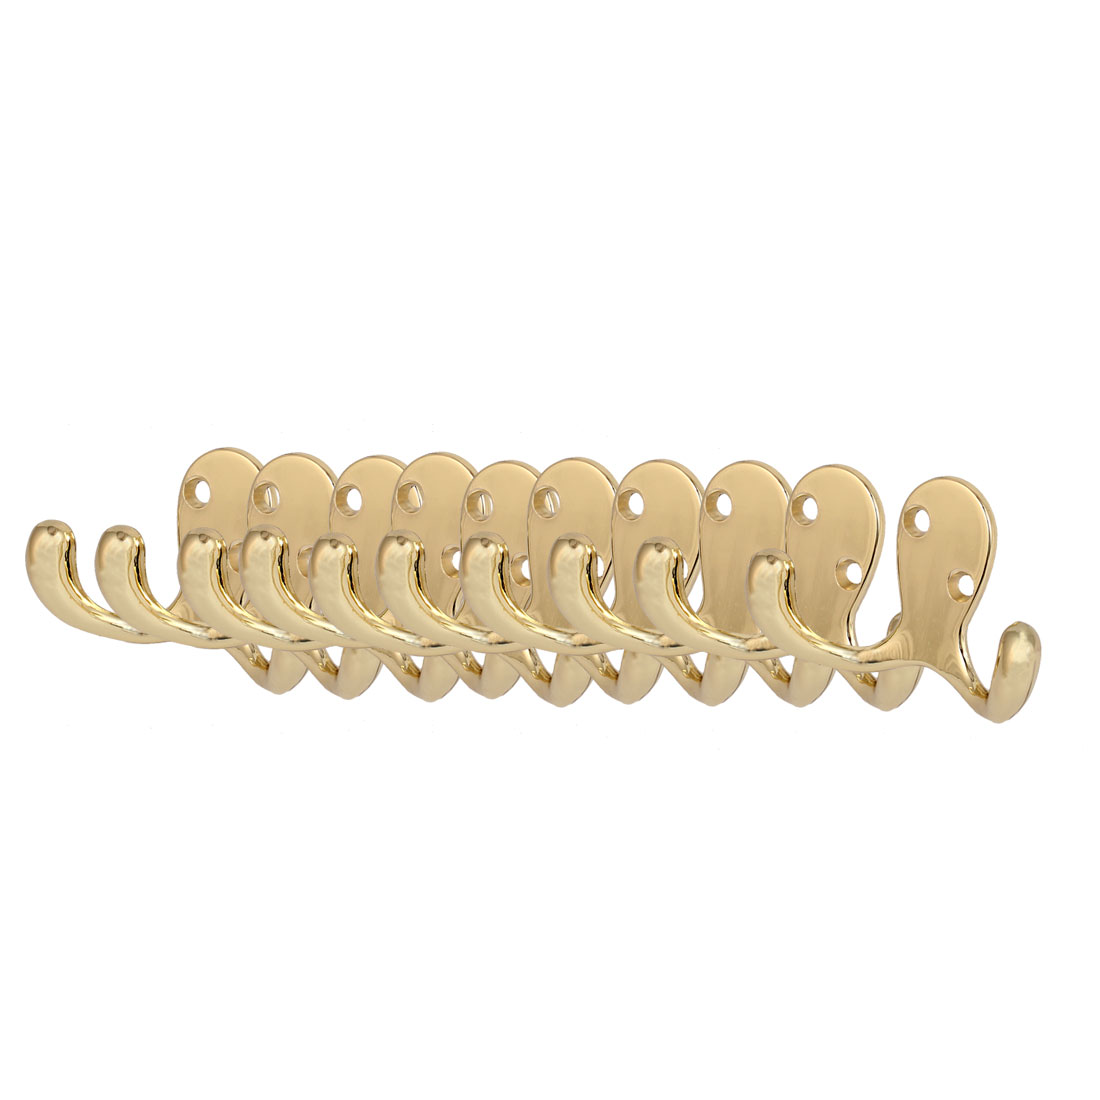 Zinc Alloy Wall Mount Robe Coat Hat Double Hook Hanger Gold Tone 10pcs